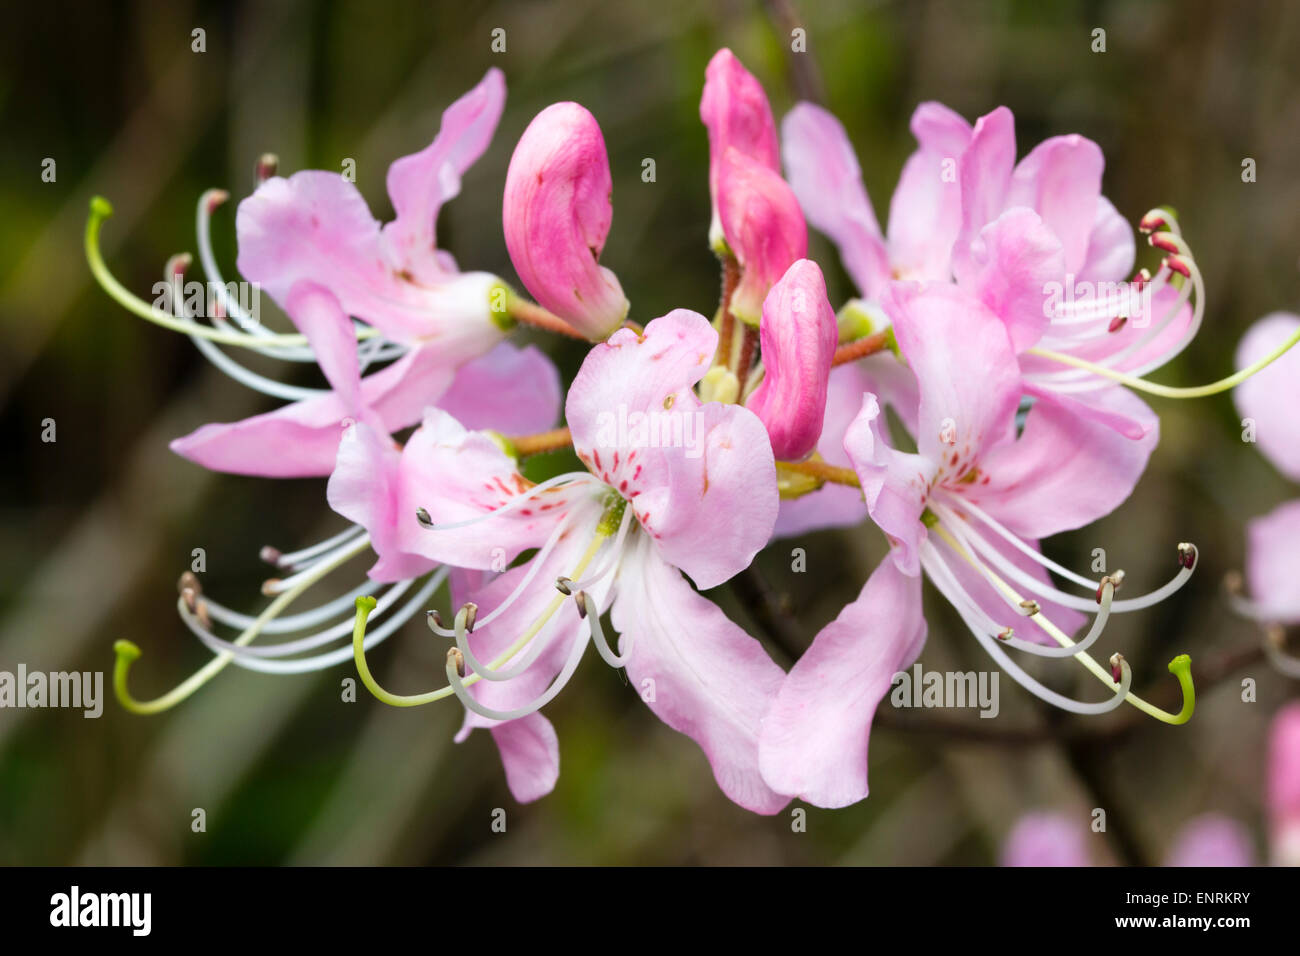 Pink spring flowers of the deciduous pinkshell azalea, Rhododendron vaseyi - Stock Image